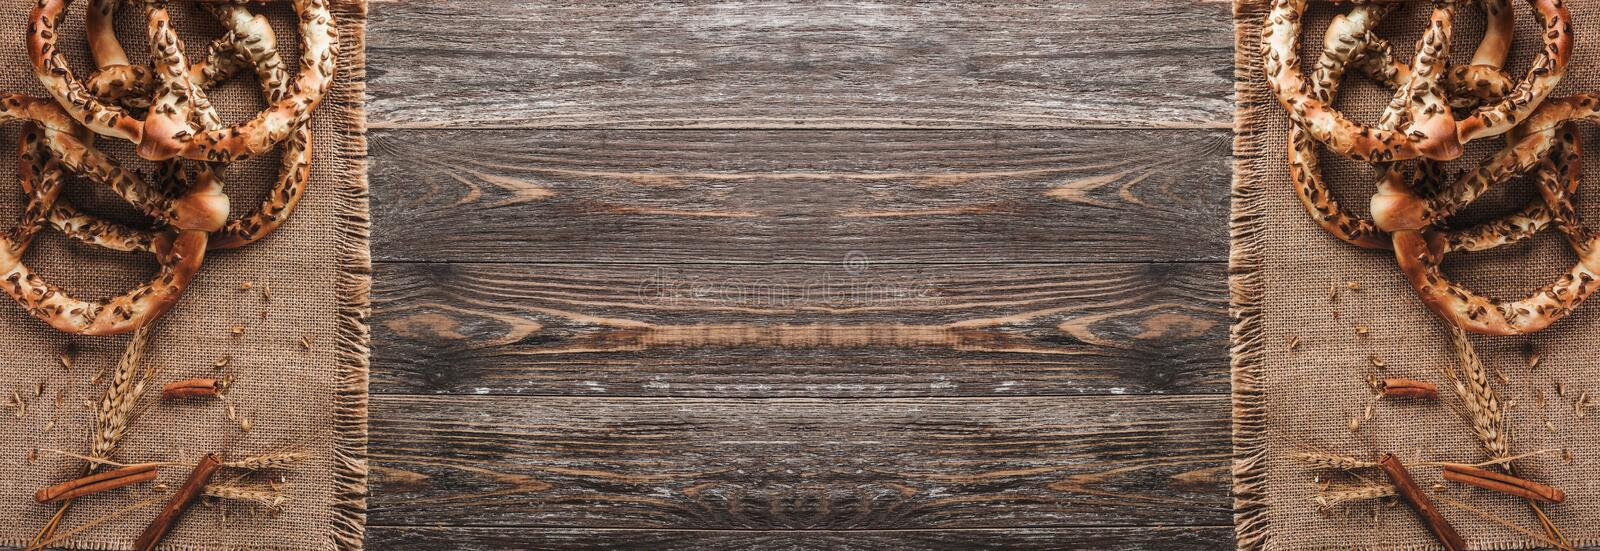 Pretzels with seeds and spice of wheat on rustic textile. Double mirror effect, top view and copy space.  royalty free stock photo